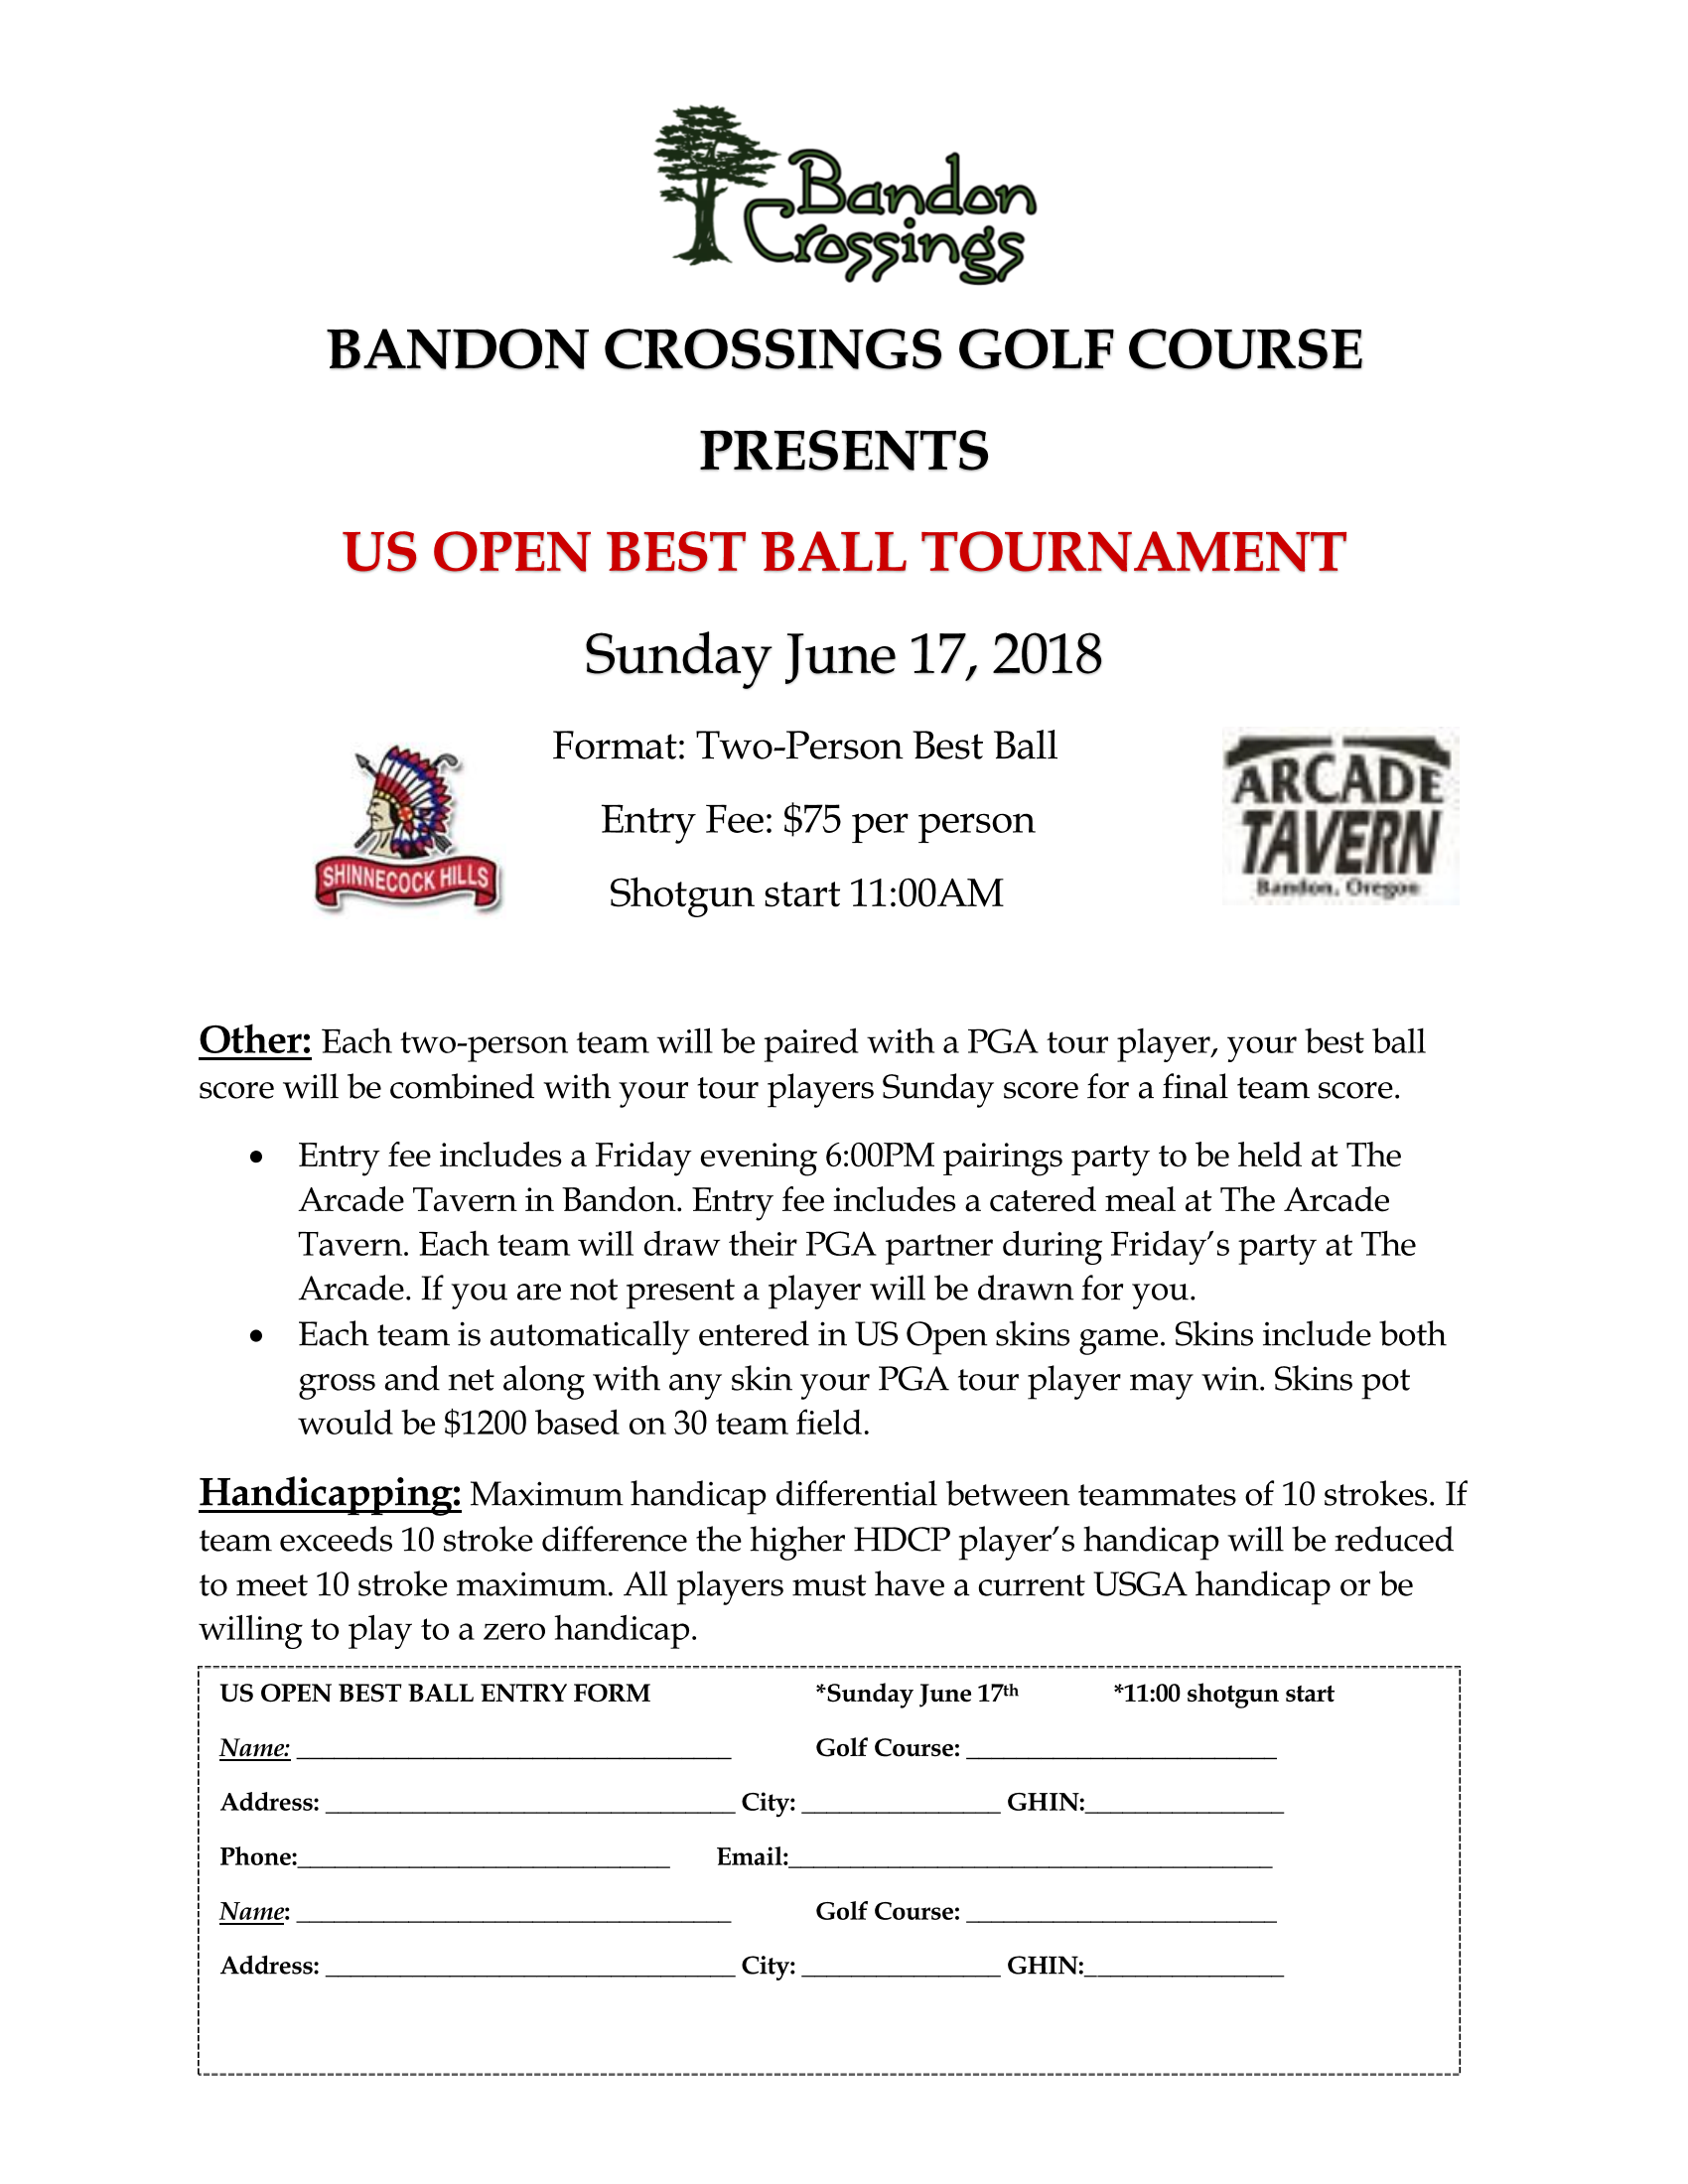 Us Open Best ball flyer 2018 revised Page 1